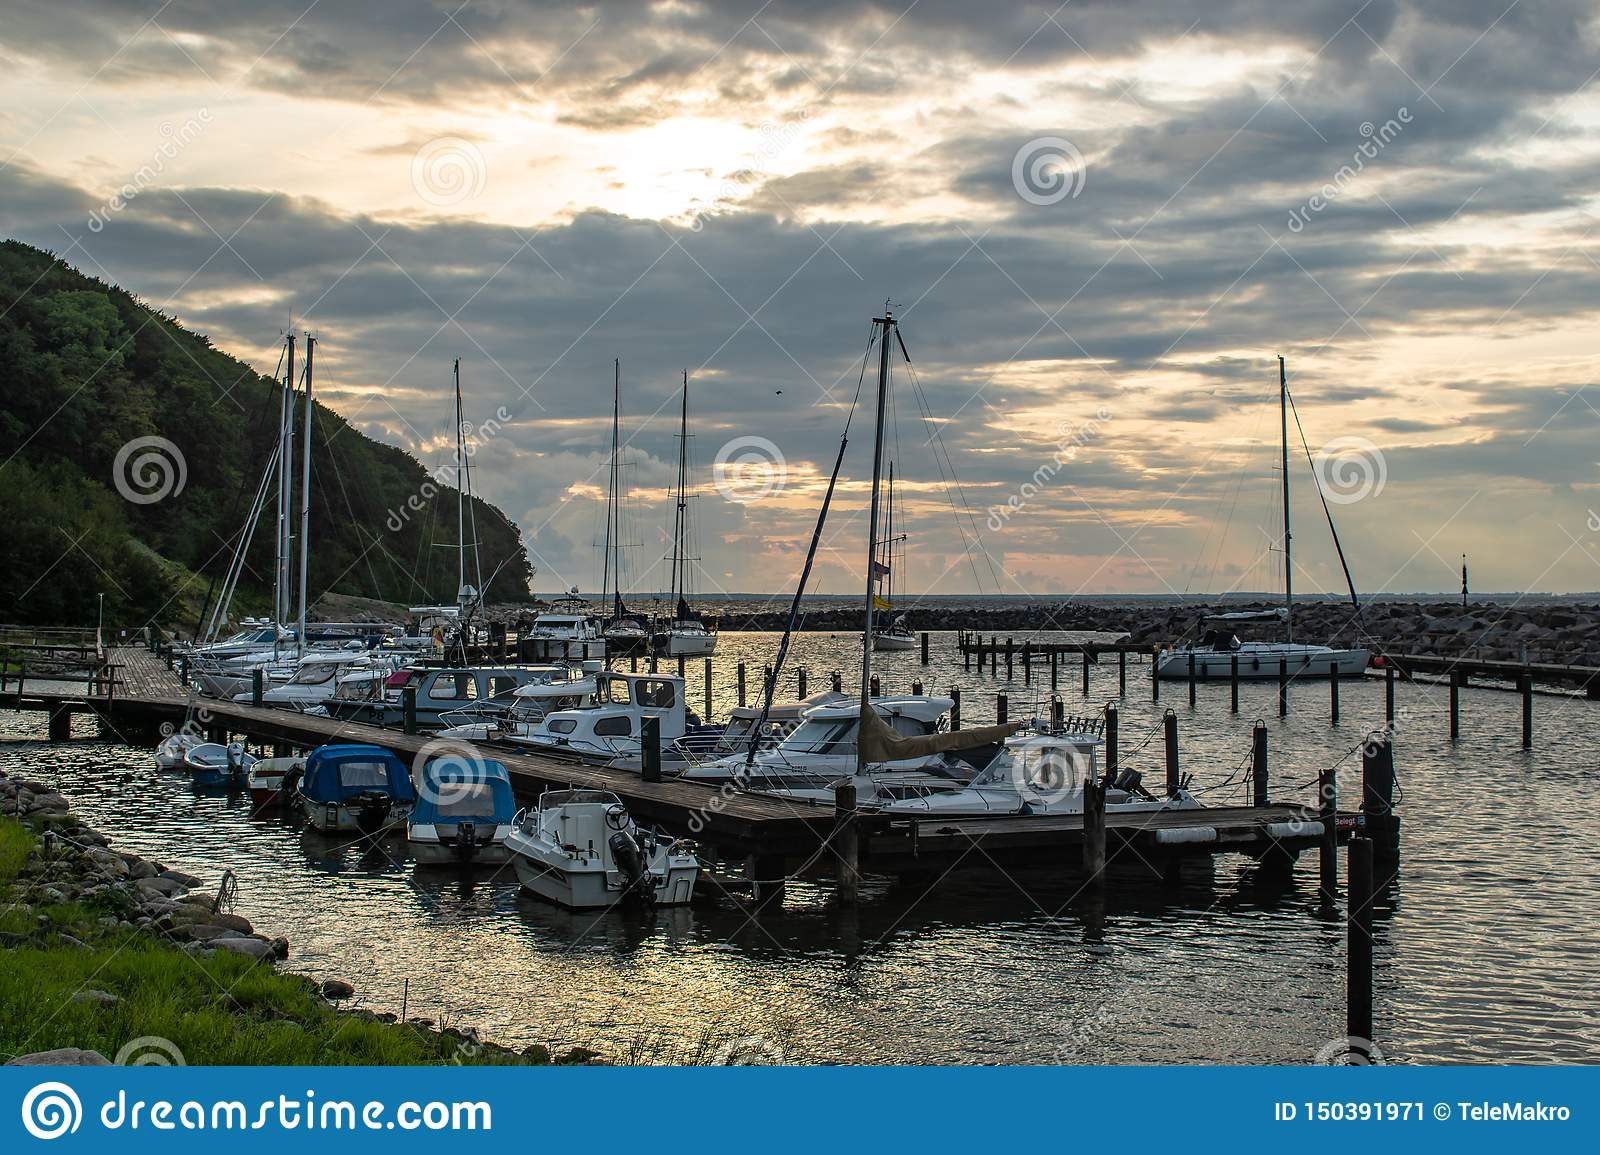 Scenic little harbour with sailing boats at sunset light